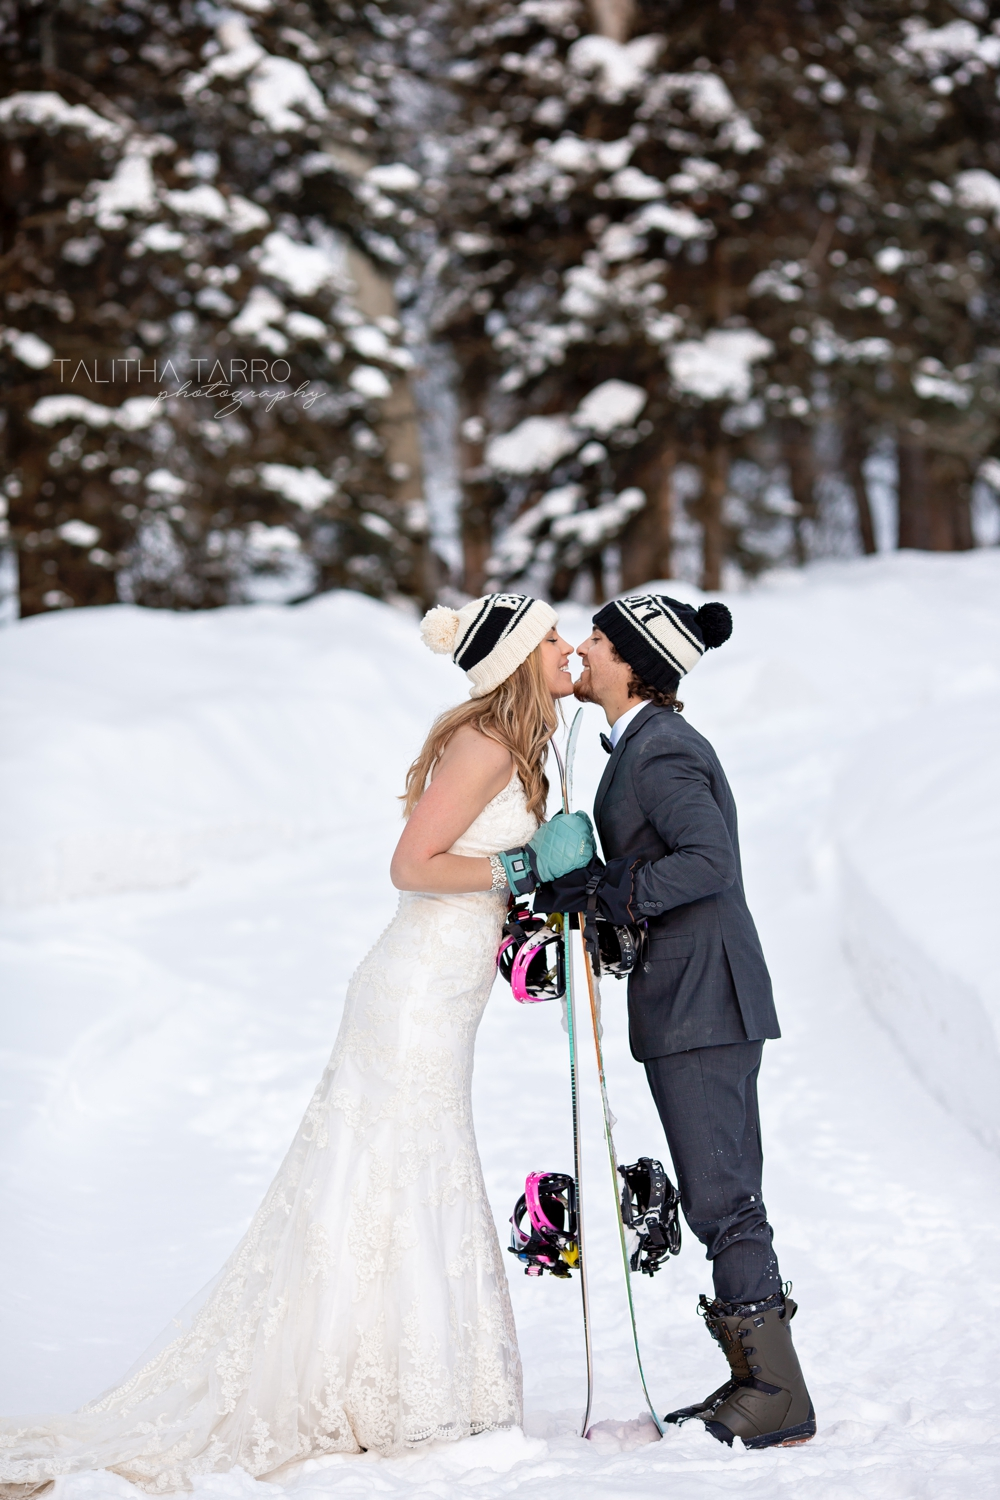 Snowboarding wedding couple